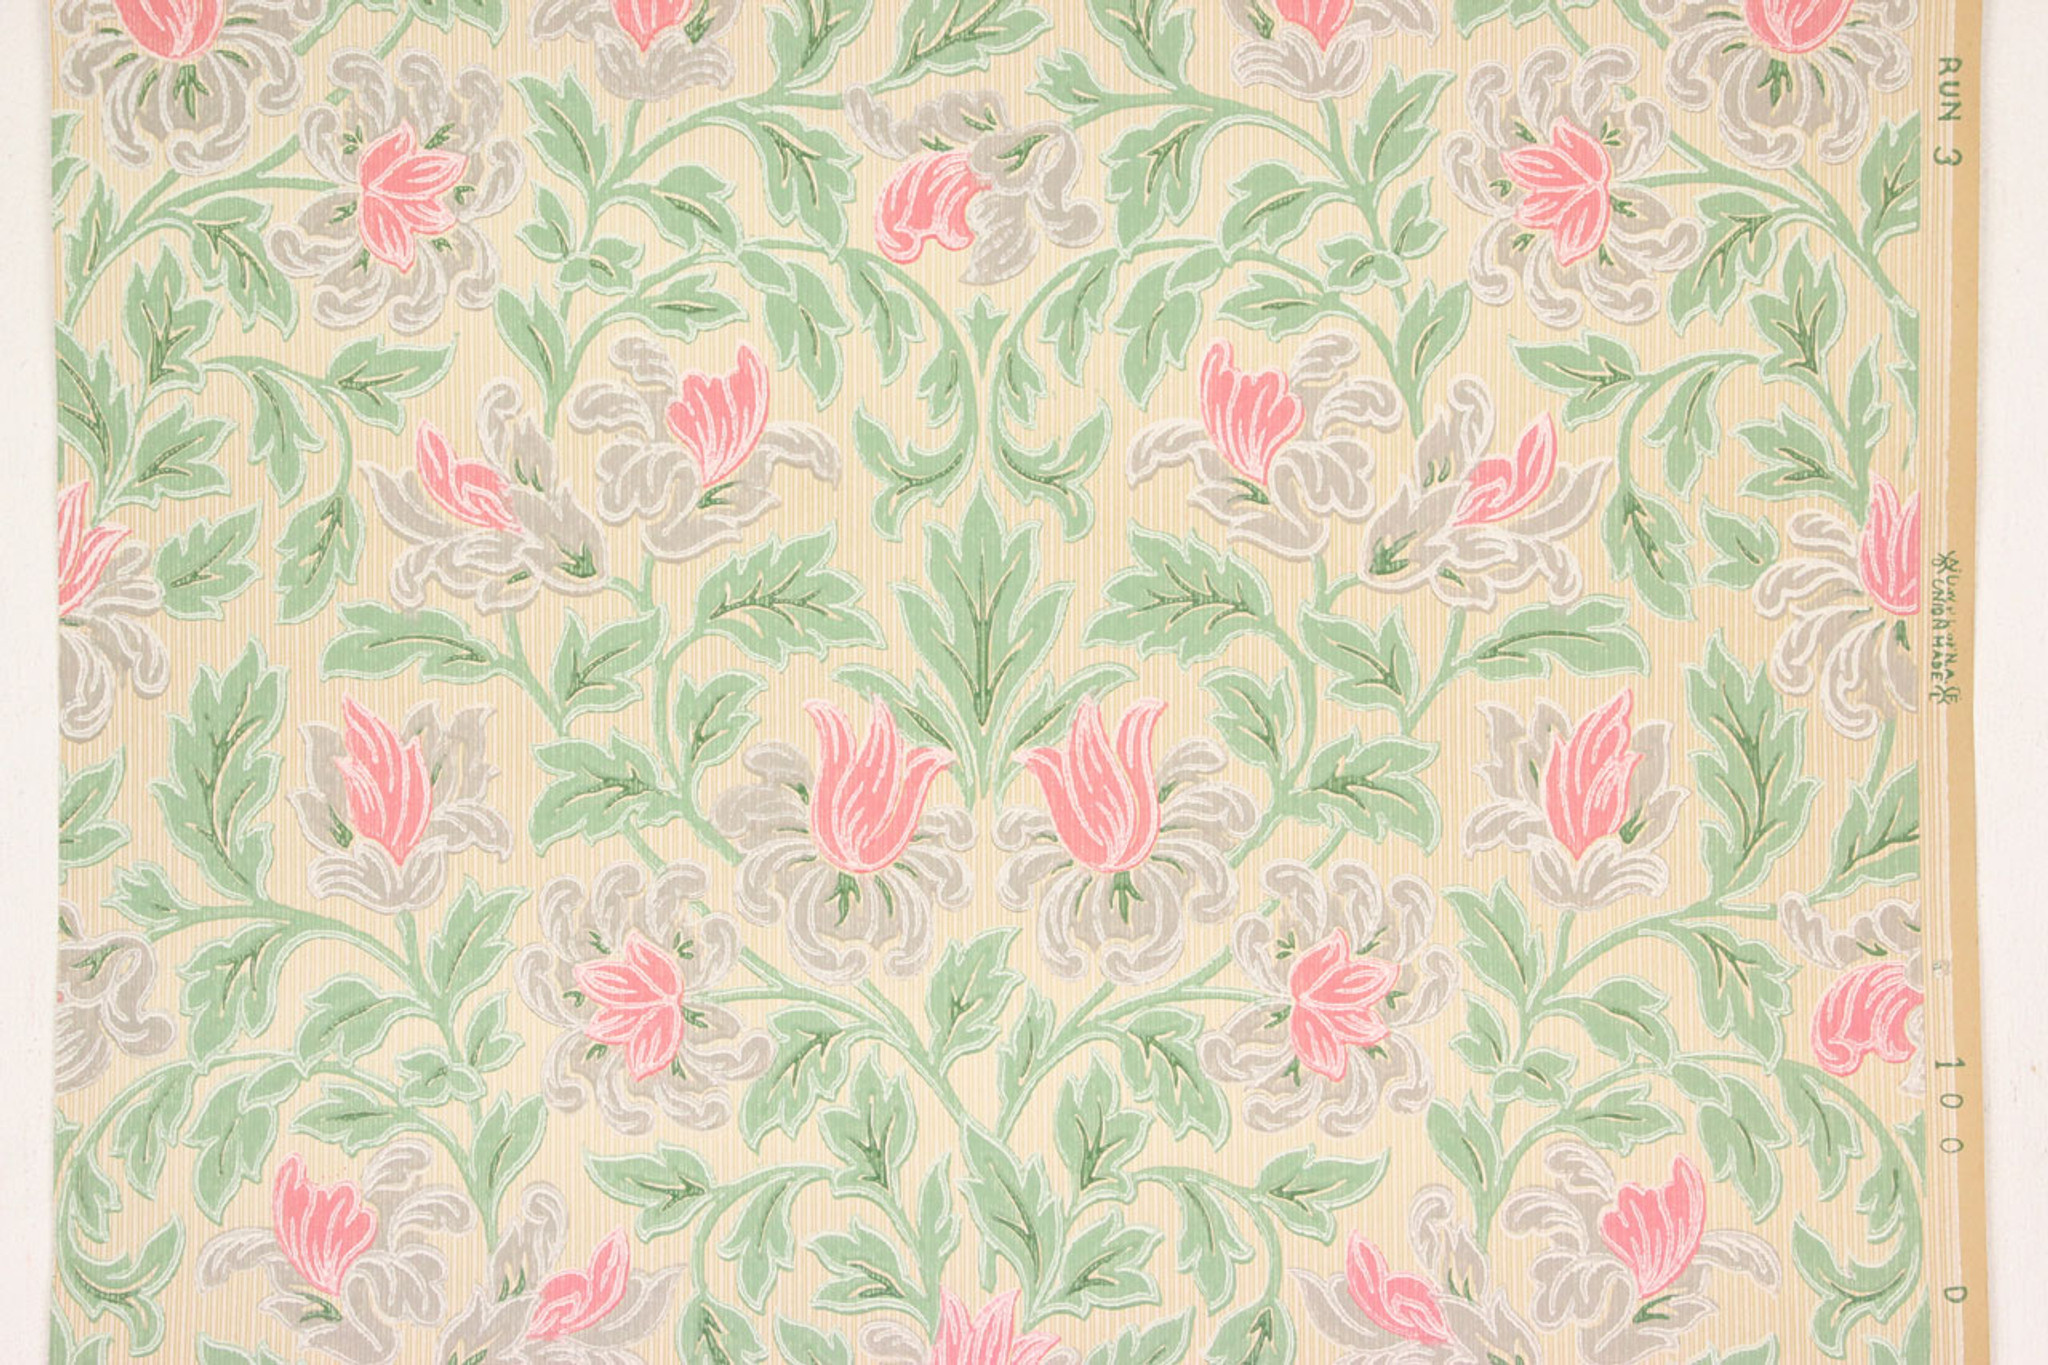 1930s vintage wallpaper pink flowers and green leaves on beige mightylinksfo